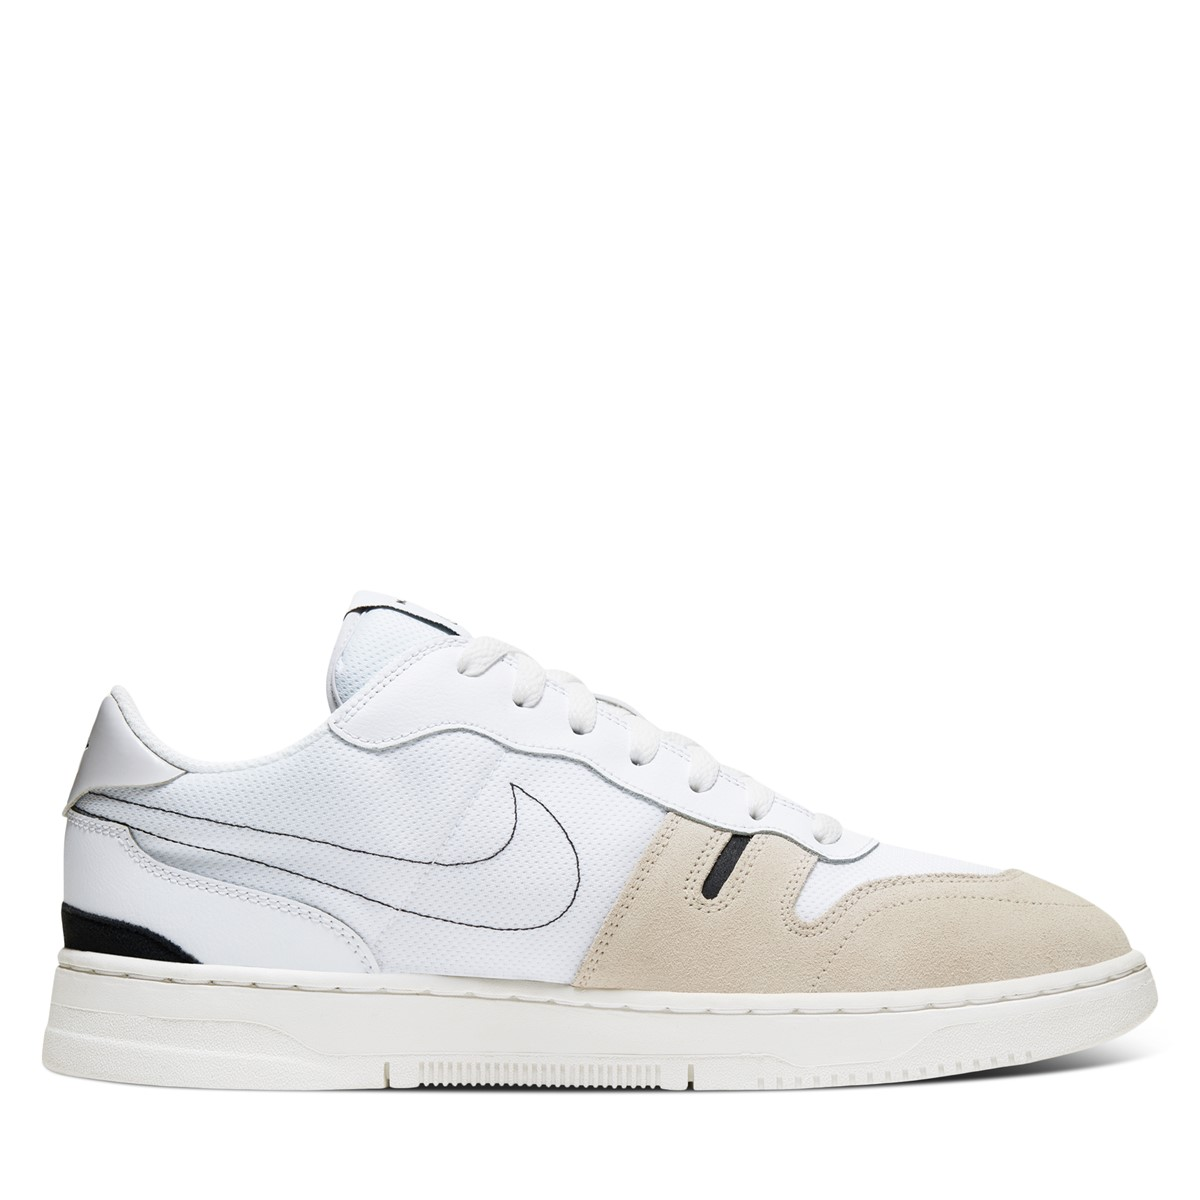 Men's Squash Type Sneakers in White